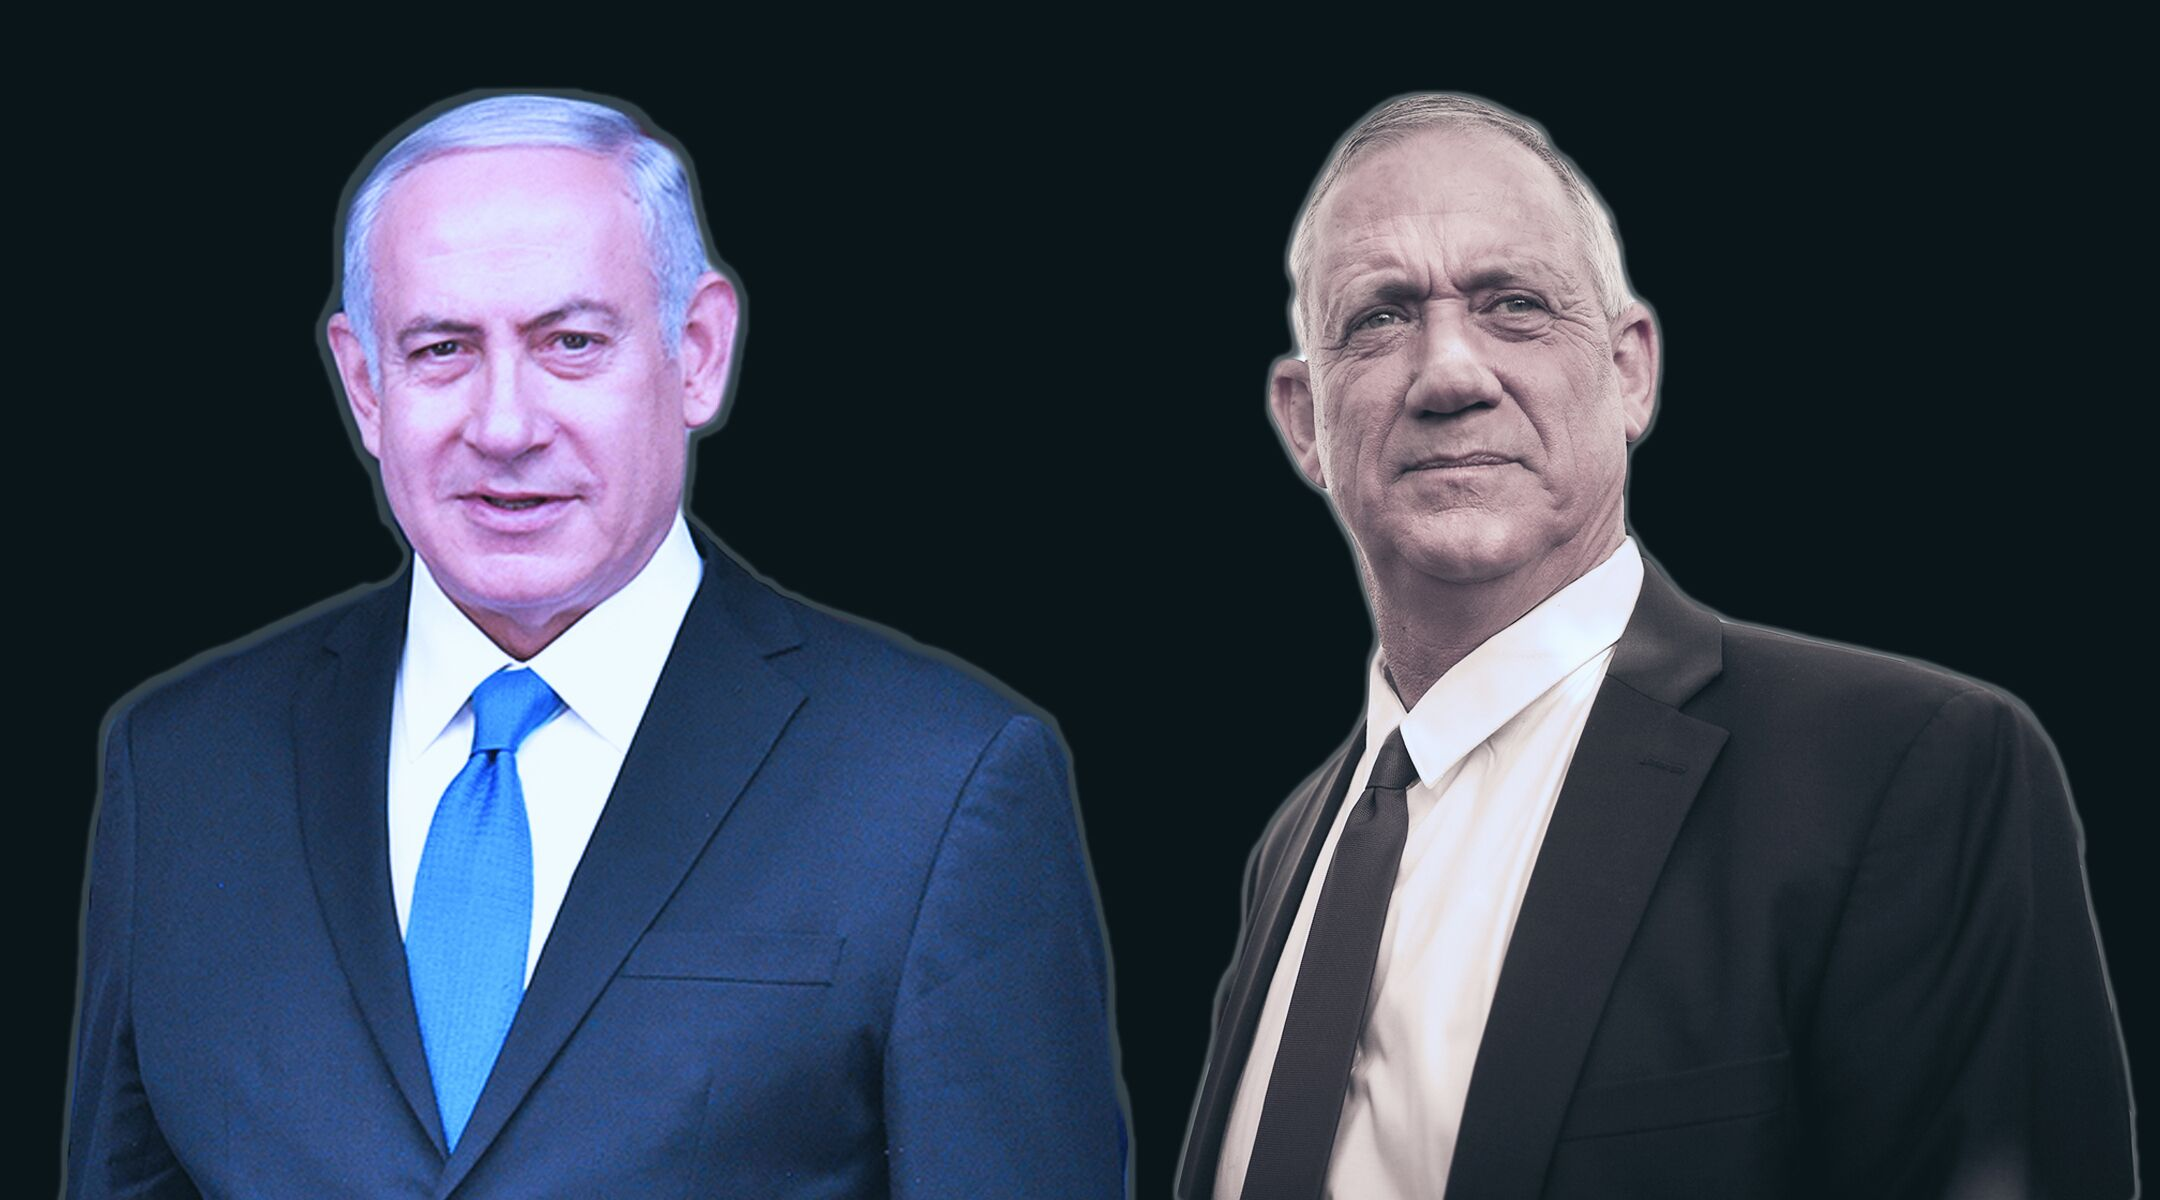 It's still unclear who will emerge victorious in Israel's elections: Prime Minister Benjamin Netanyahu, left, or Benny Gantz. (Photo/JTA-Getty Images)